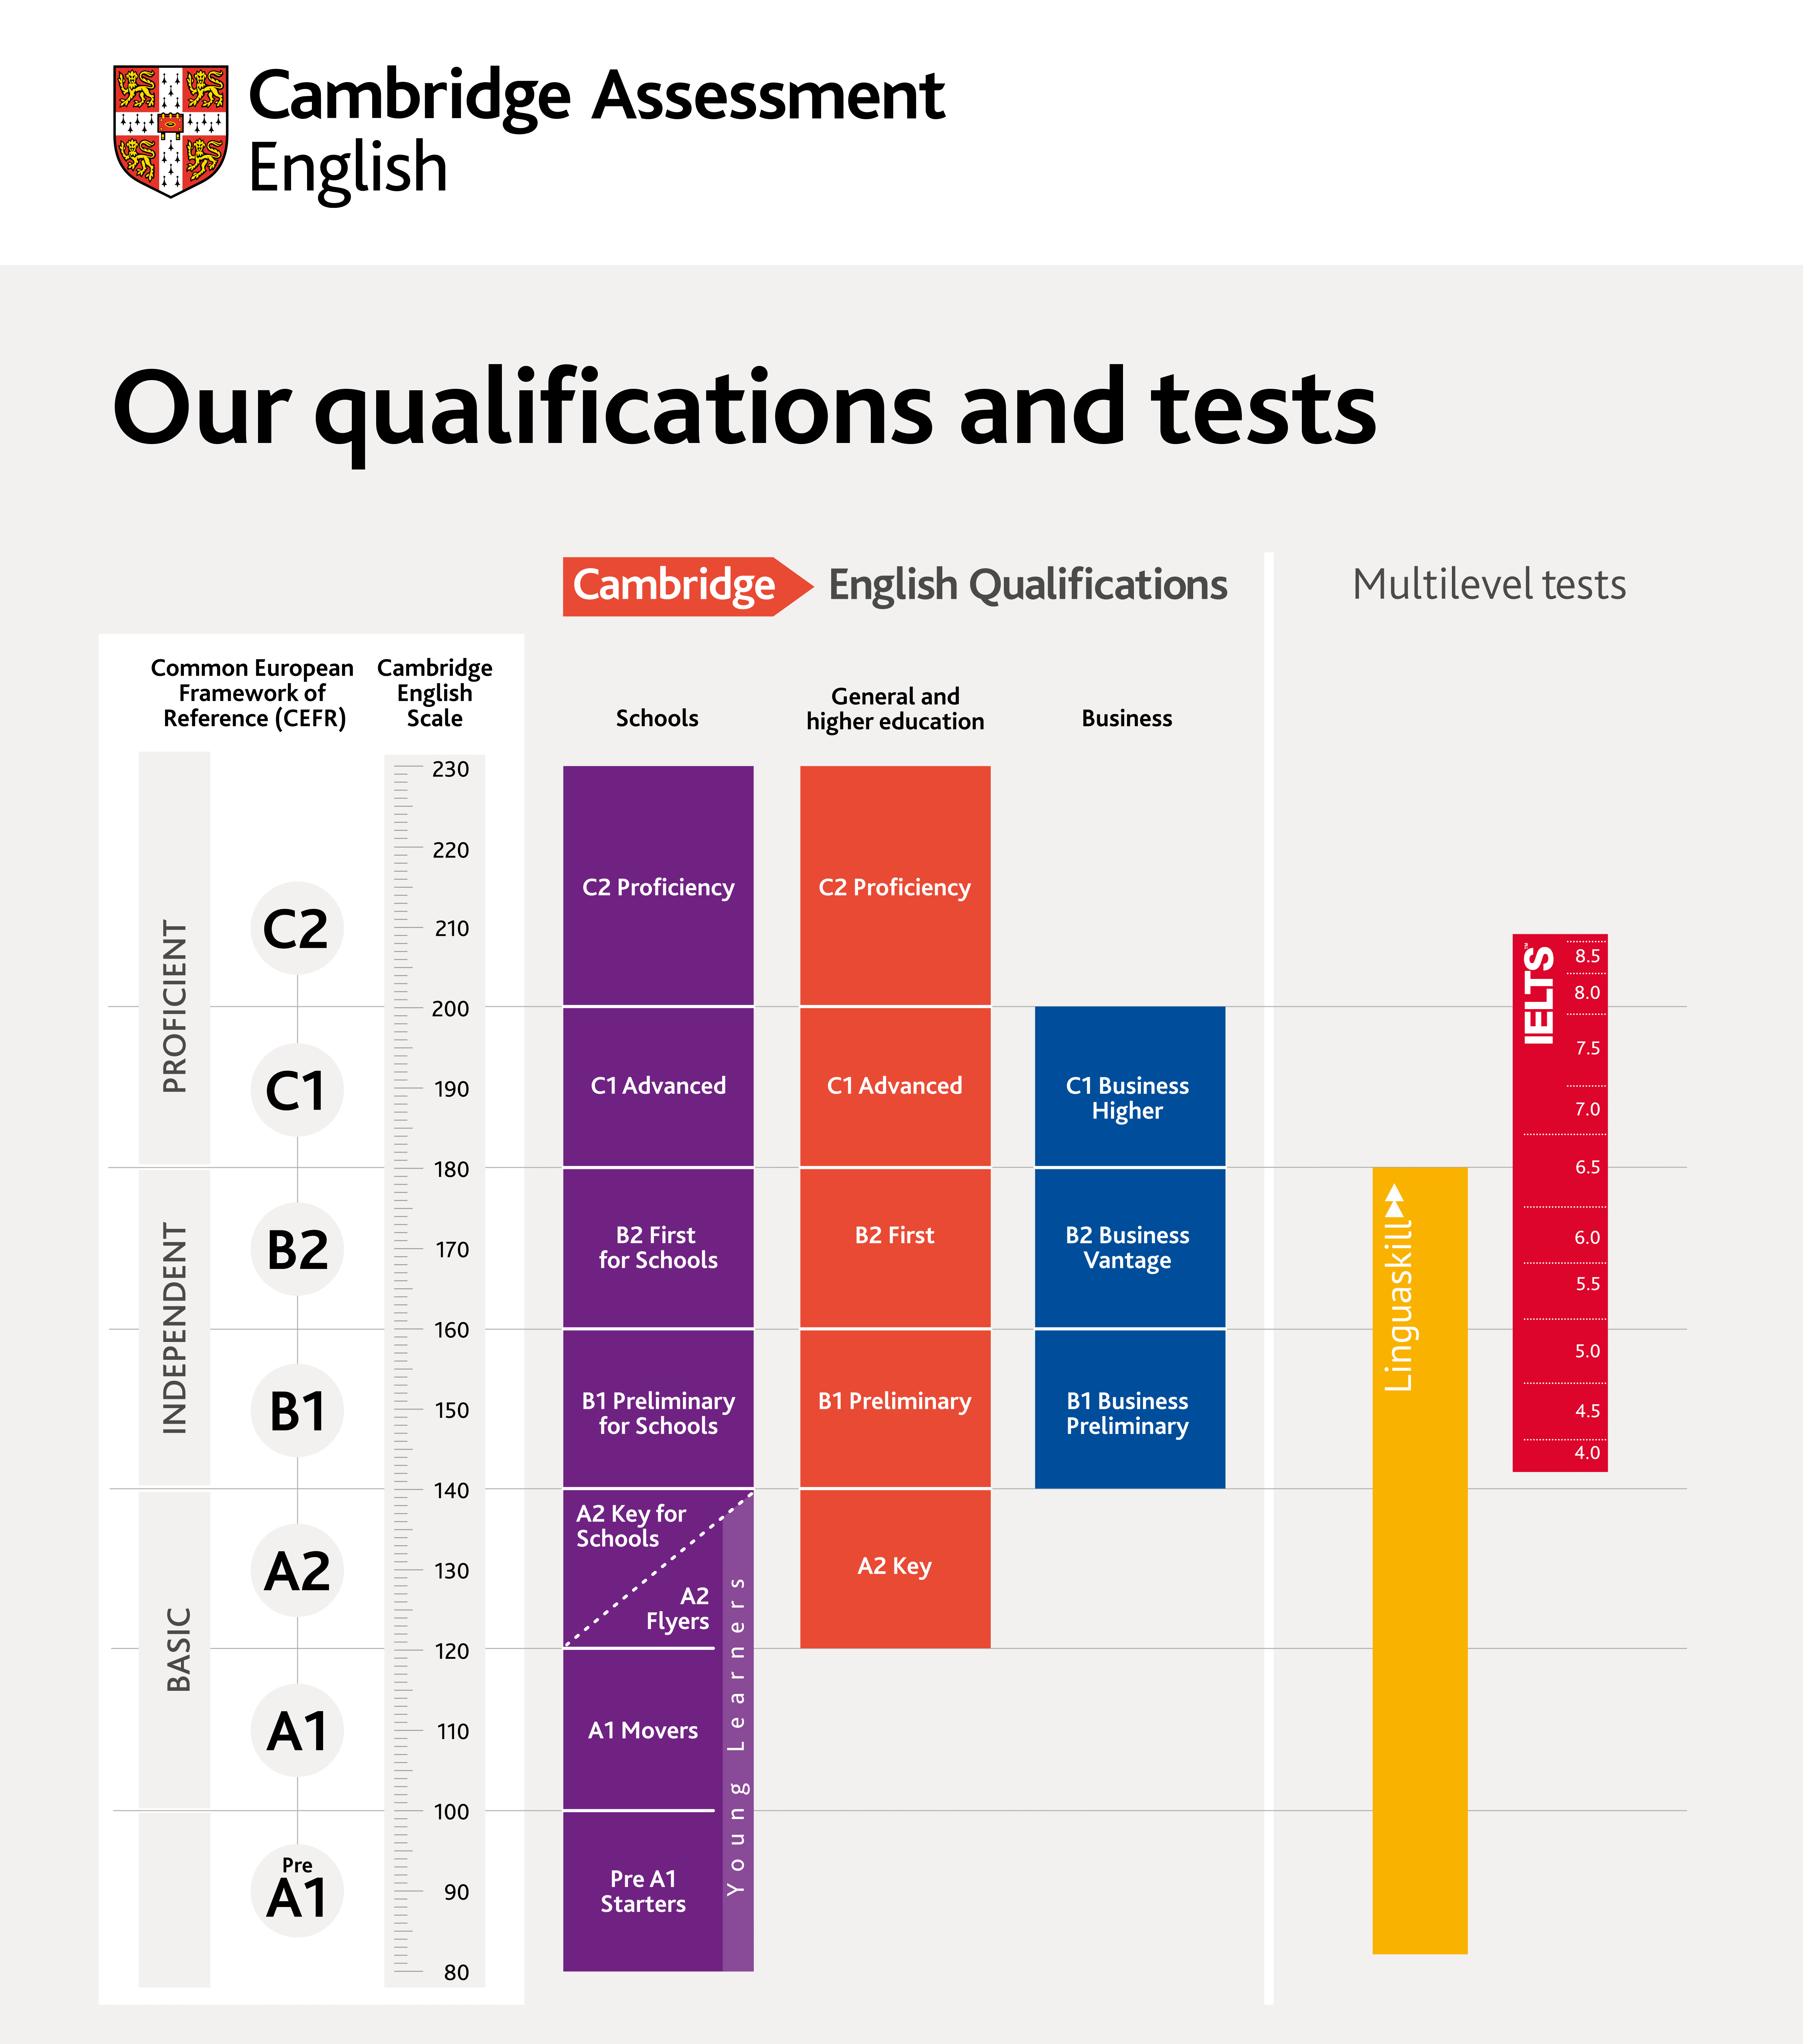 Cambridge English Qualifications and Tests on a scale